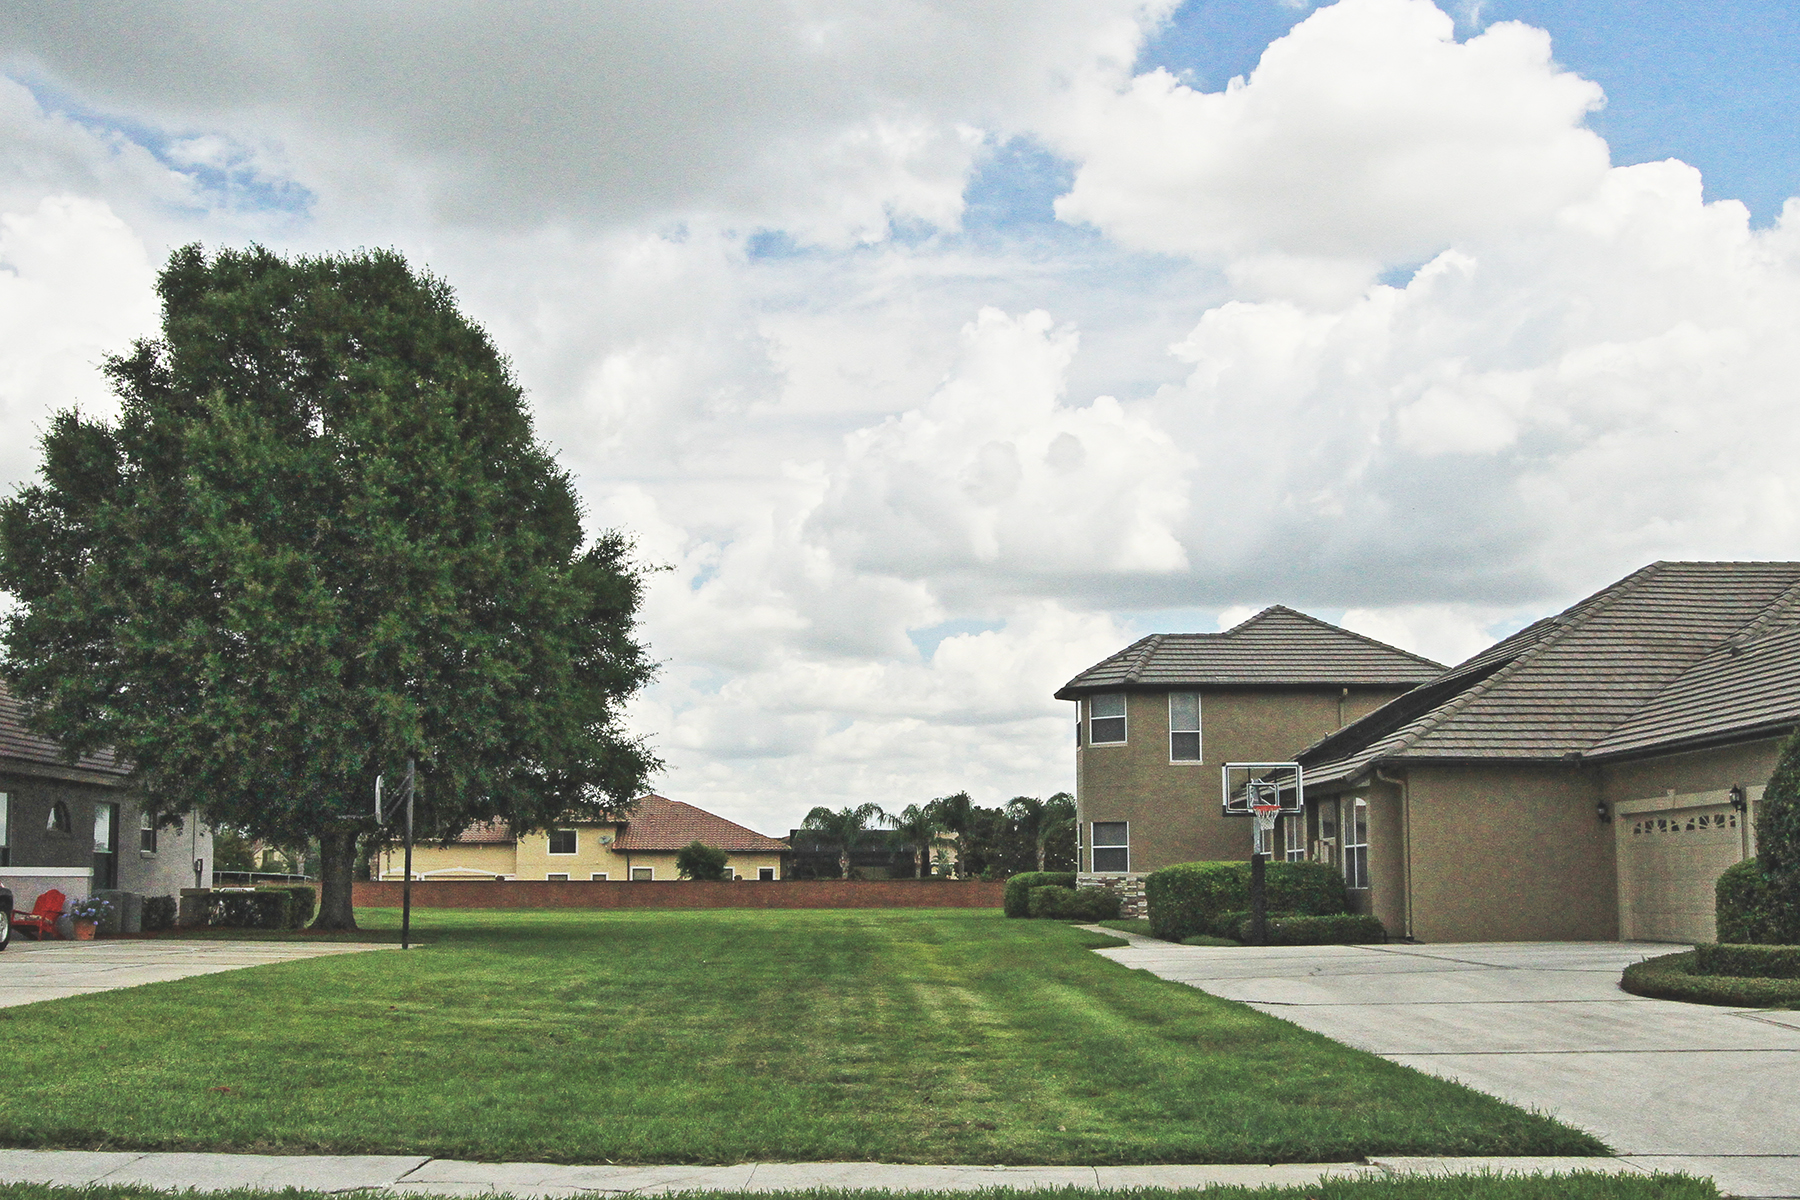 Land for Sale at WINDERMERE 11544 Willow Gardens Dr 7 Windermere, Florida 34786 United States